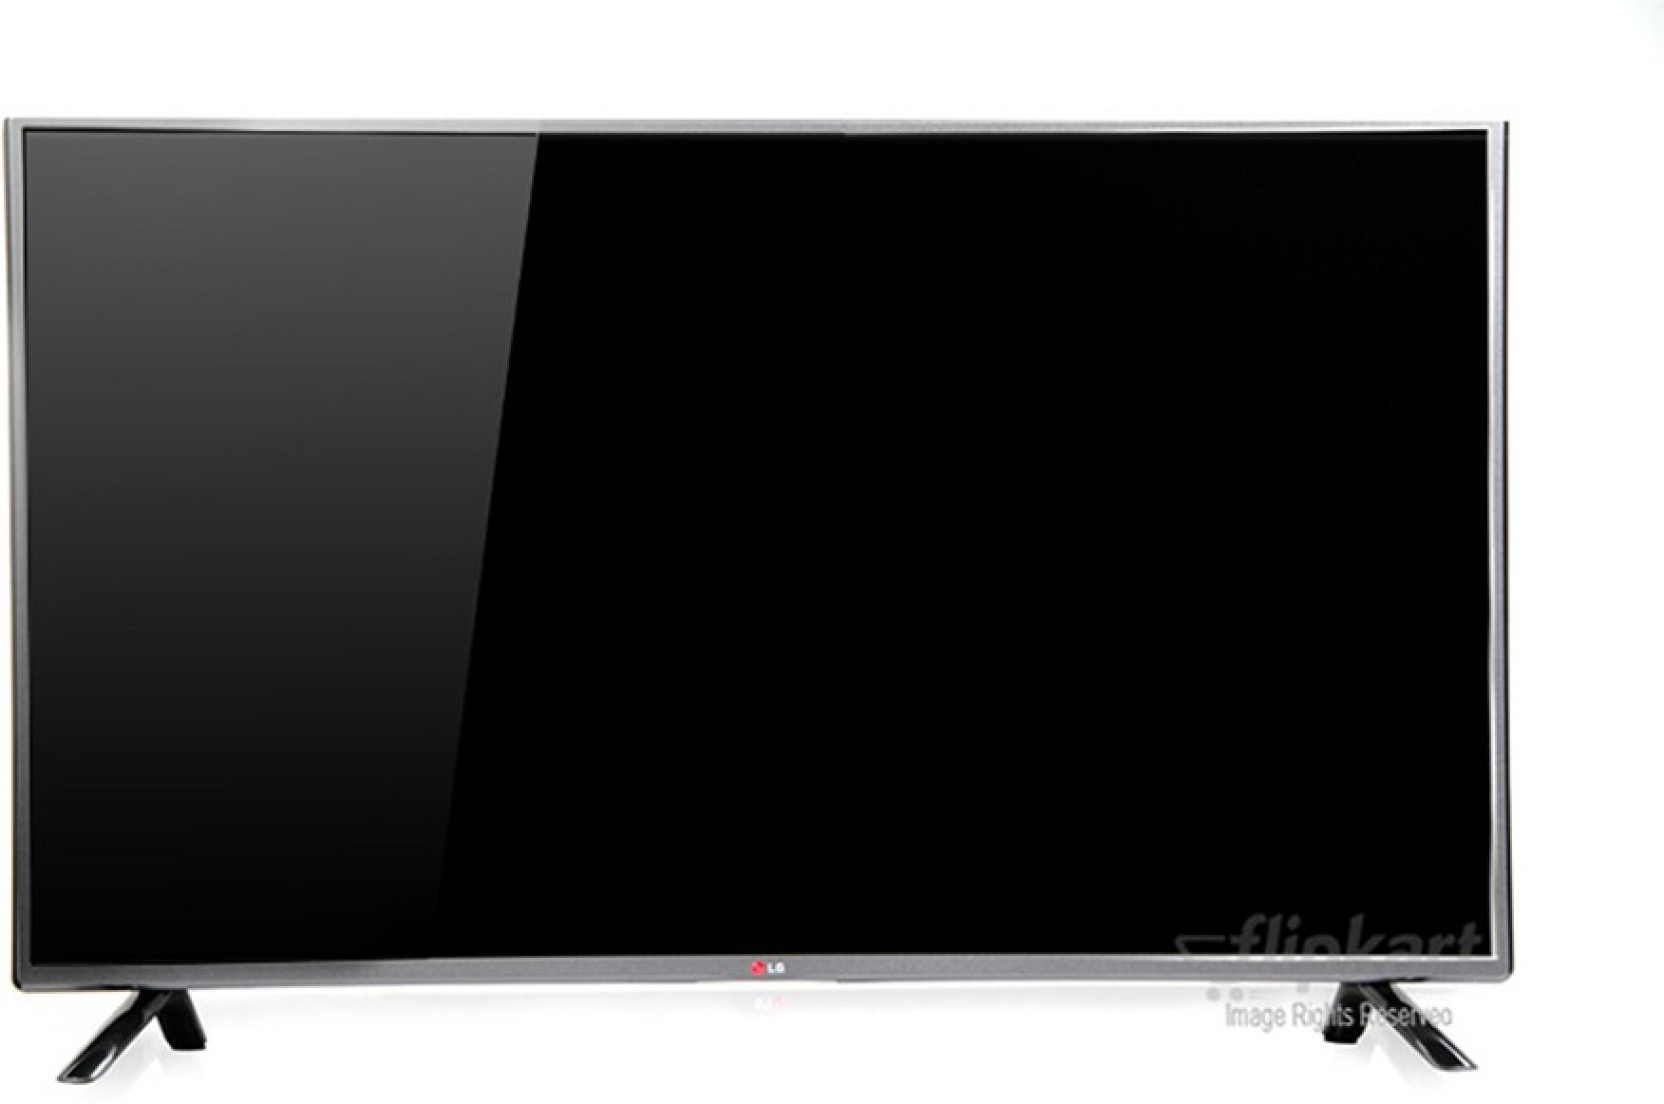 Lg 119cm 47 Inch Full Hd Led Tv Online At Best Prices In